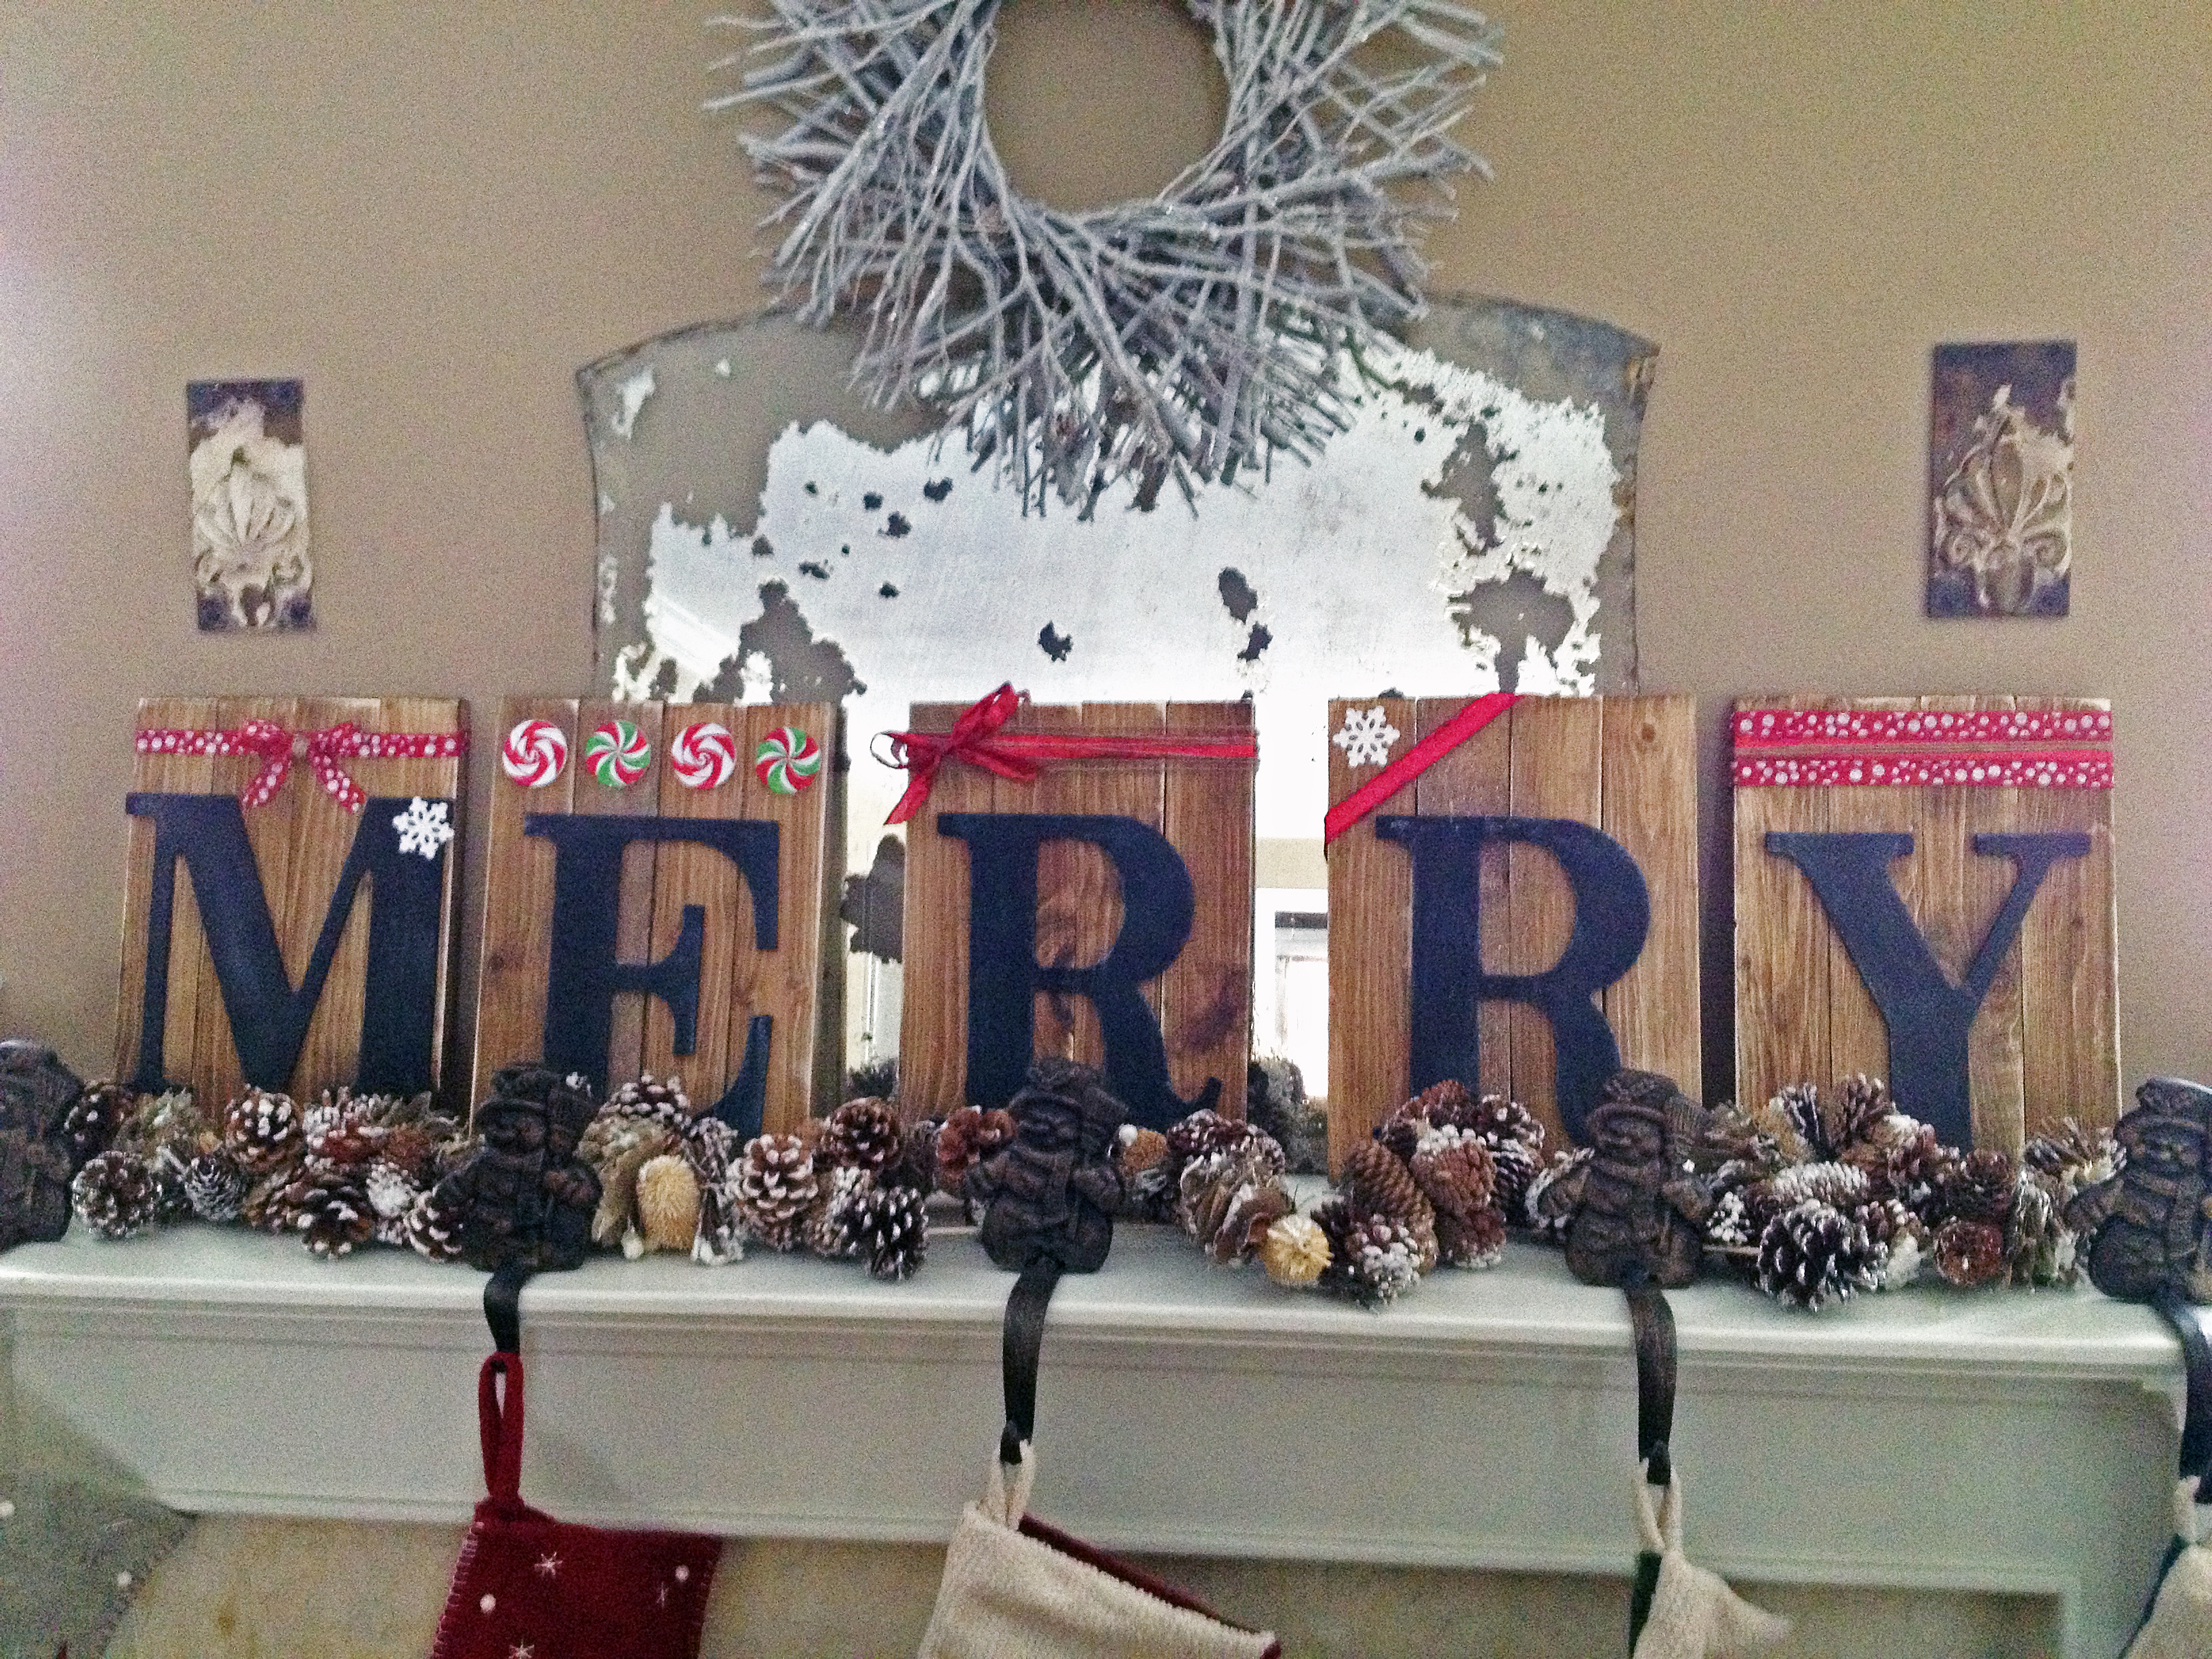 merry - Christmas Decor Signs